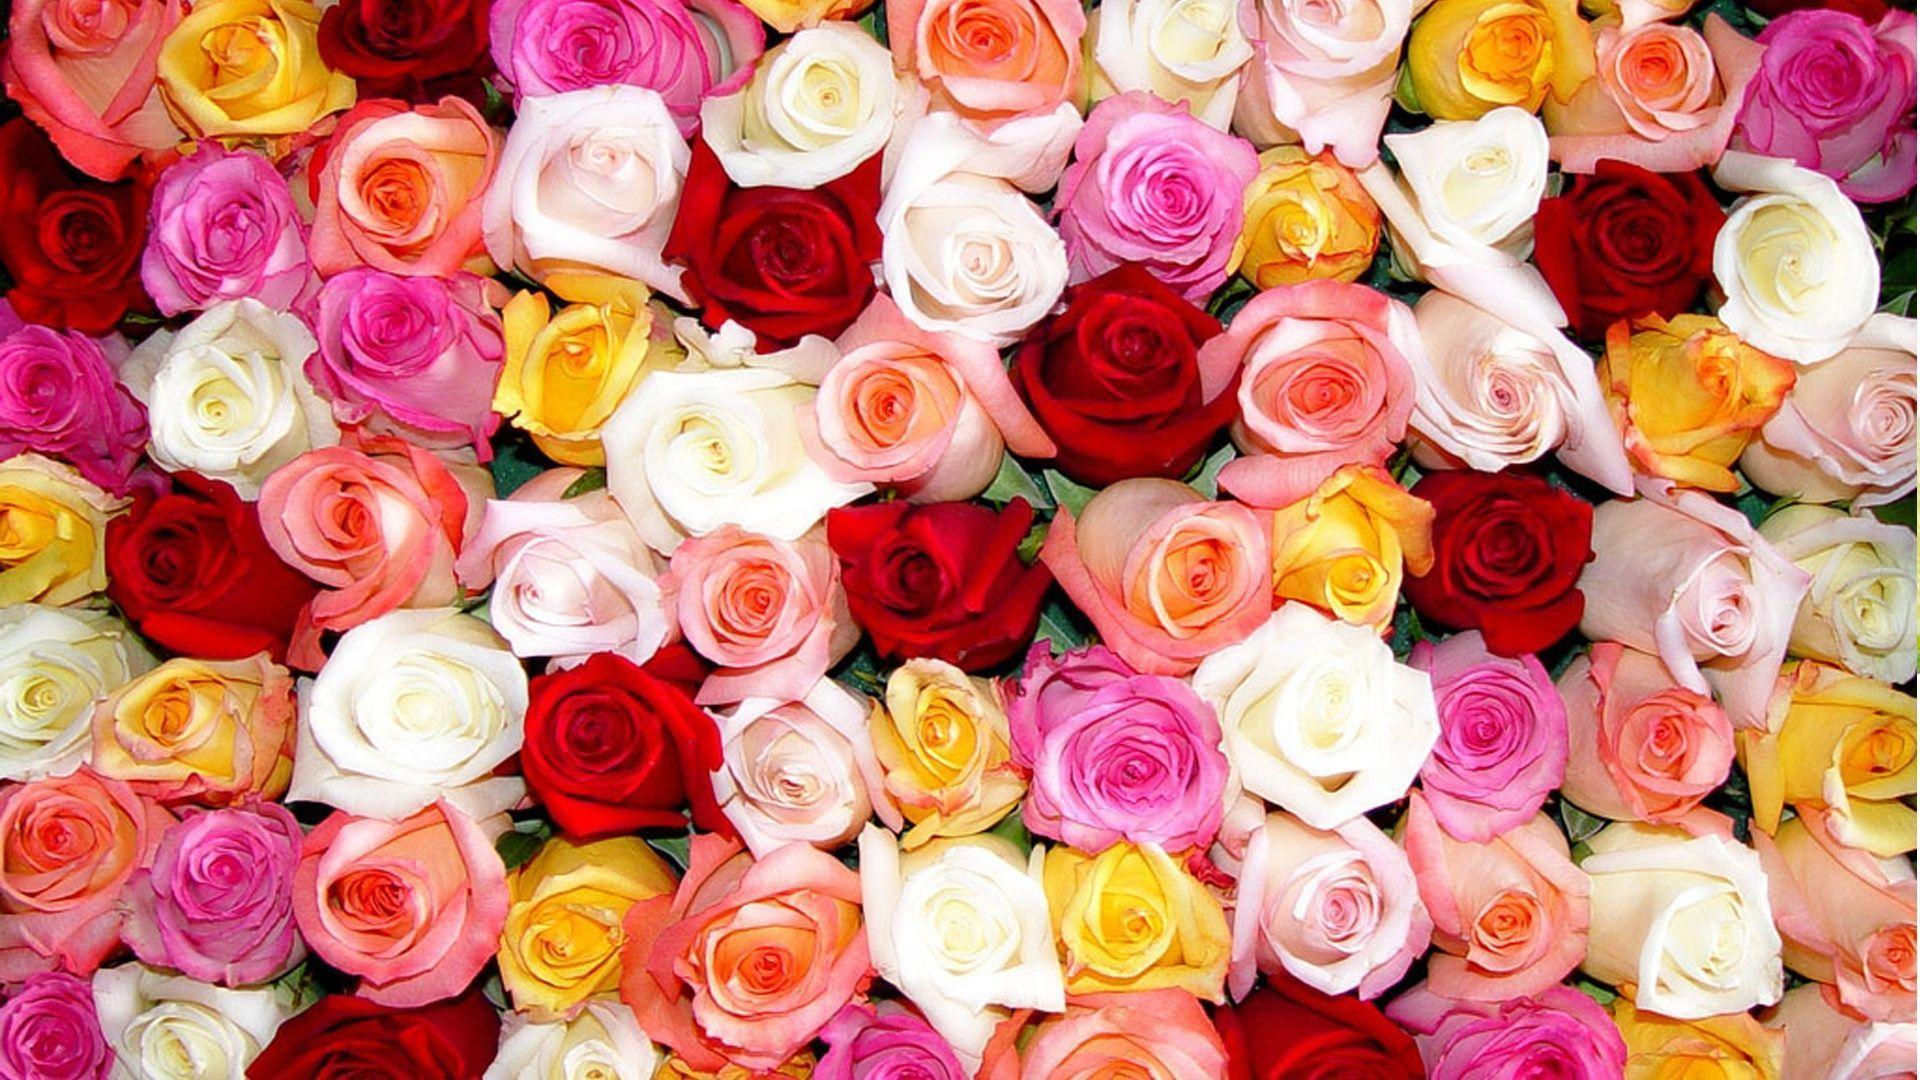 Pictures Of Roses Wallpapers - Wallpaper Cave